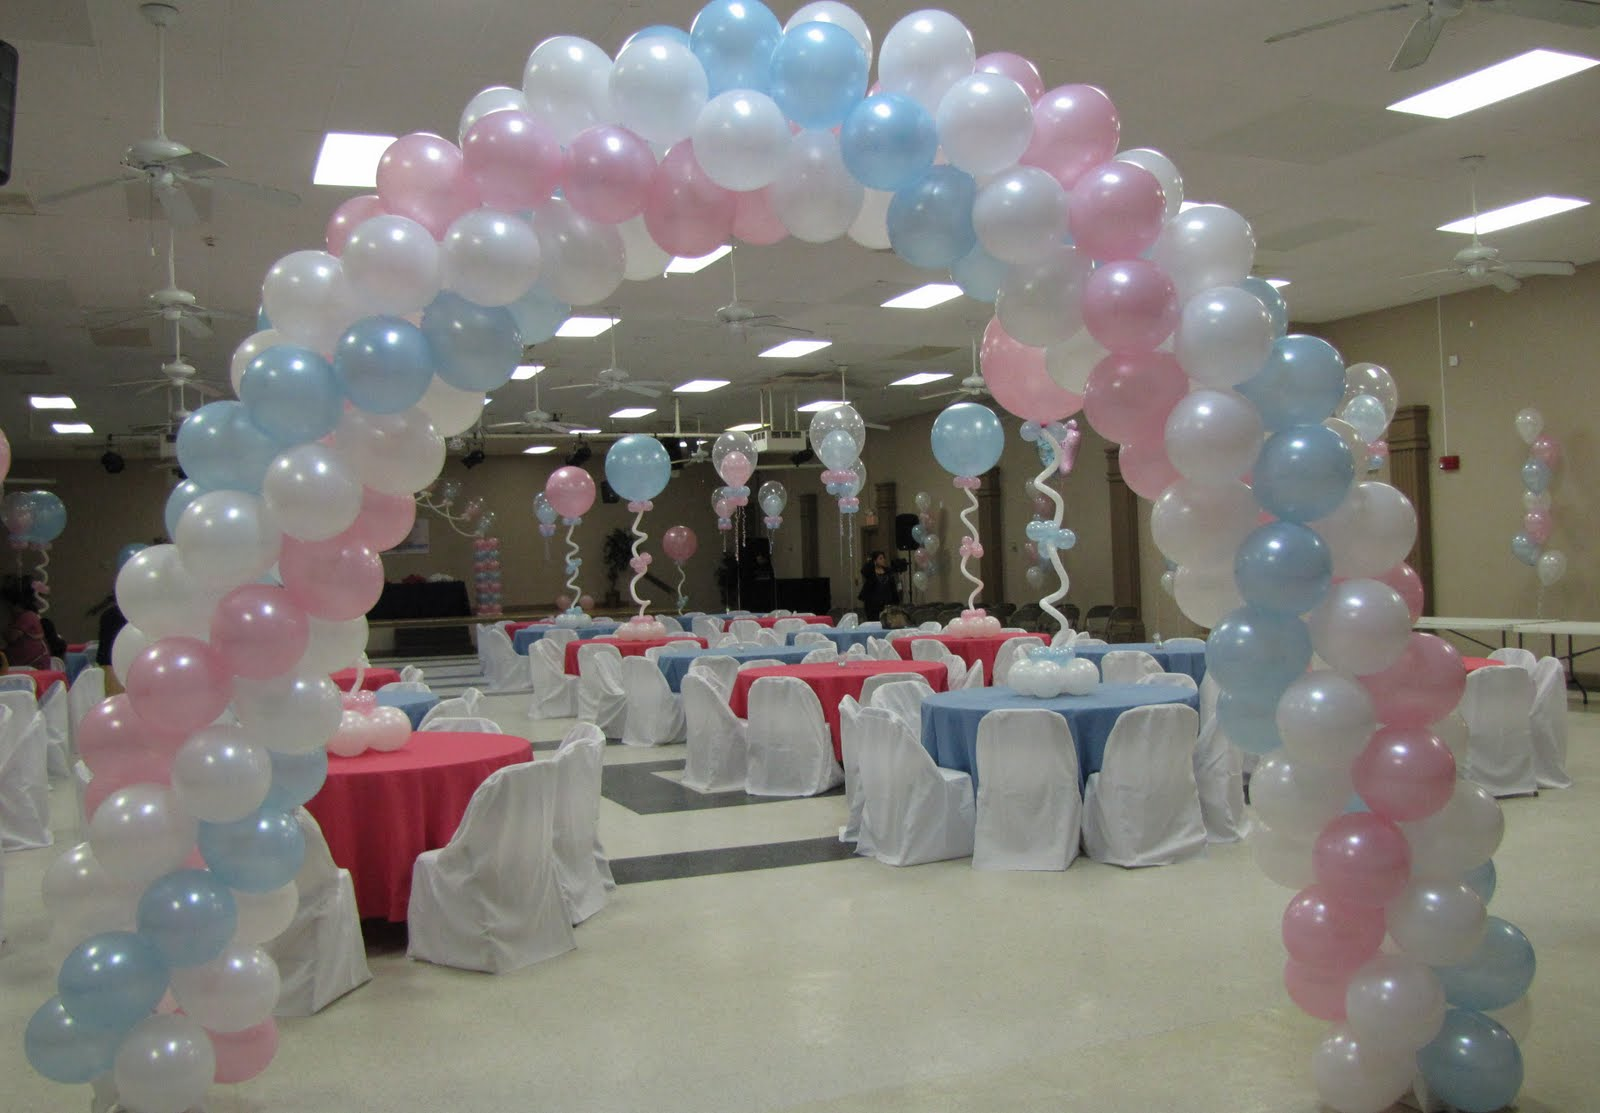 Balloons decorations for baby shower party favors ideas for Baby shower balloons decoration